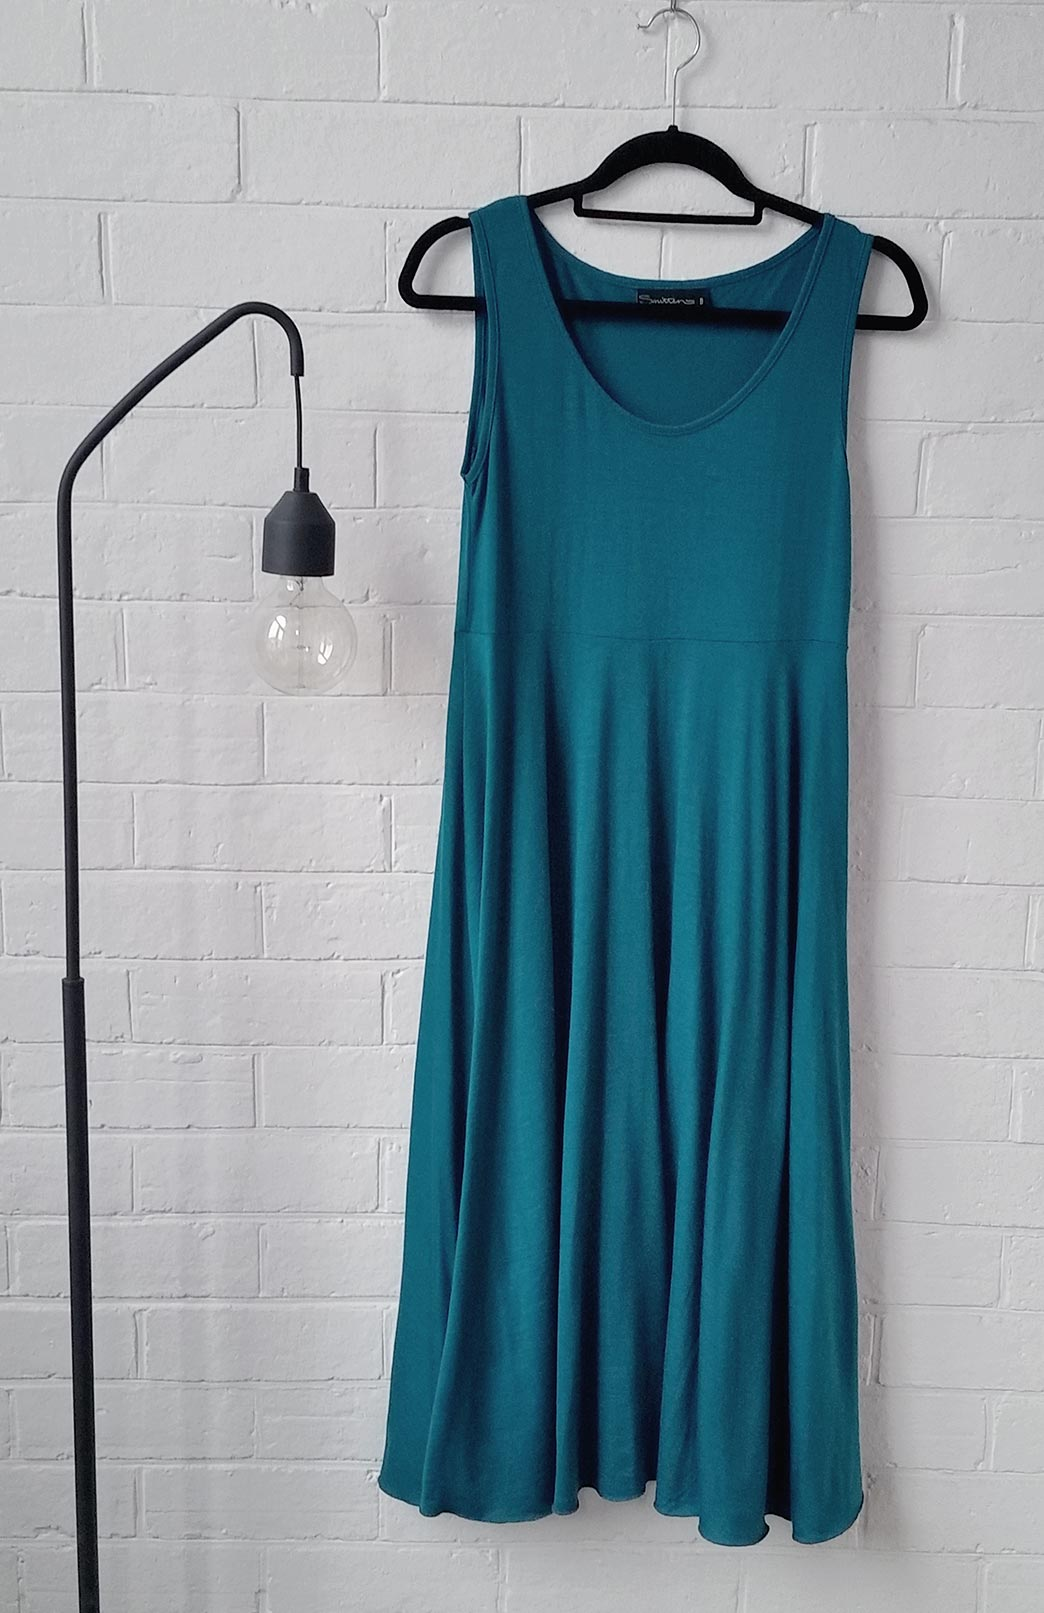 Fan Dress - Women's Teal Woollen Dress with empire waistline - Smitten Merino Tasmania Australia